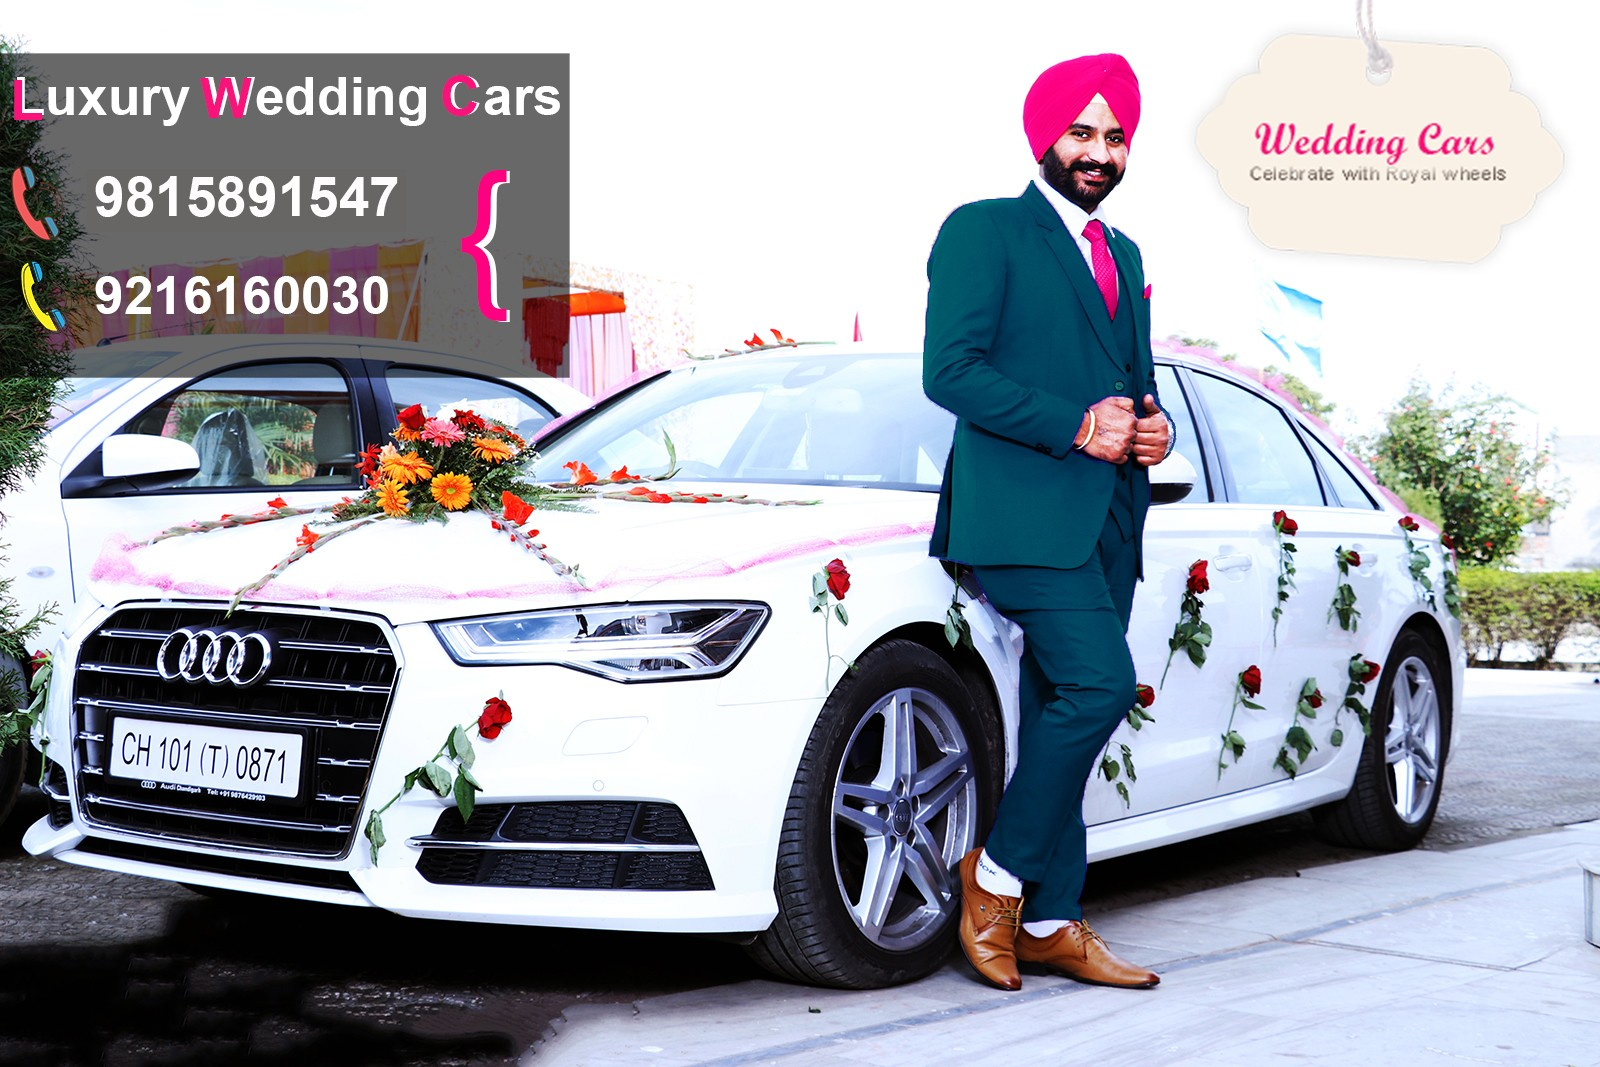 Luxury Wedding Cars in Karnal, wedding car on rent in karnal, karnal wedding cars